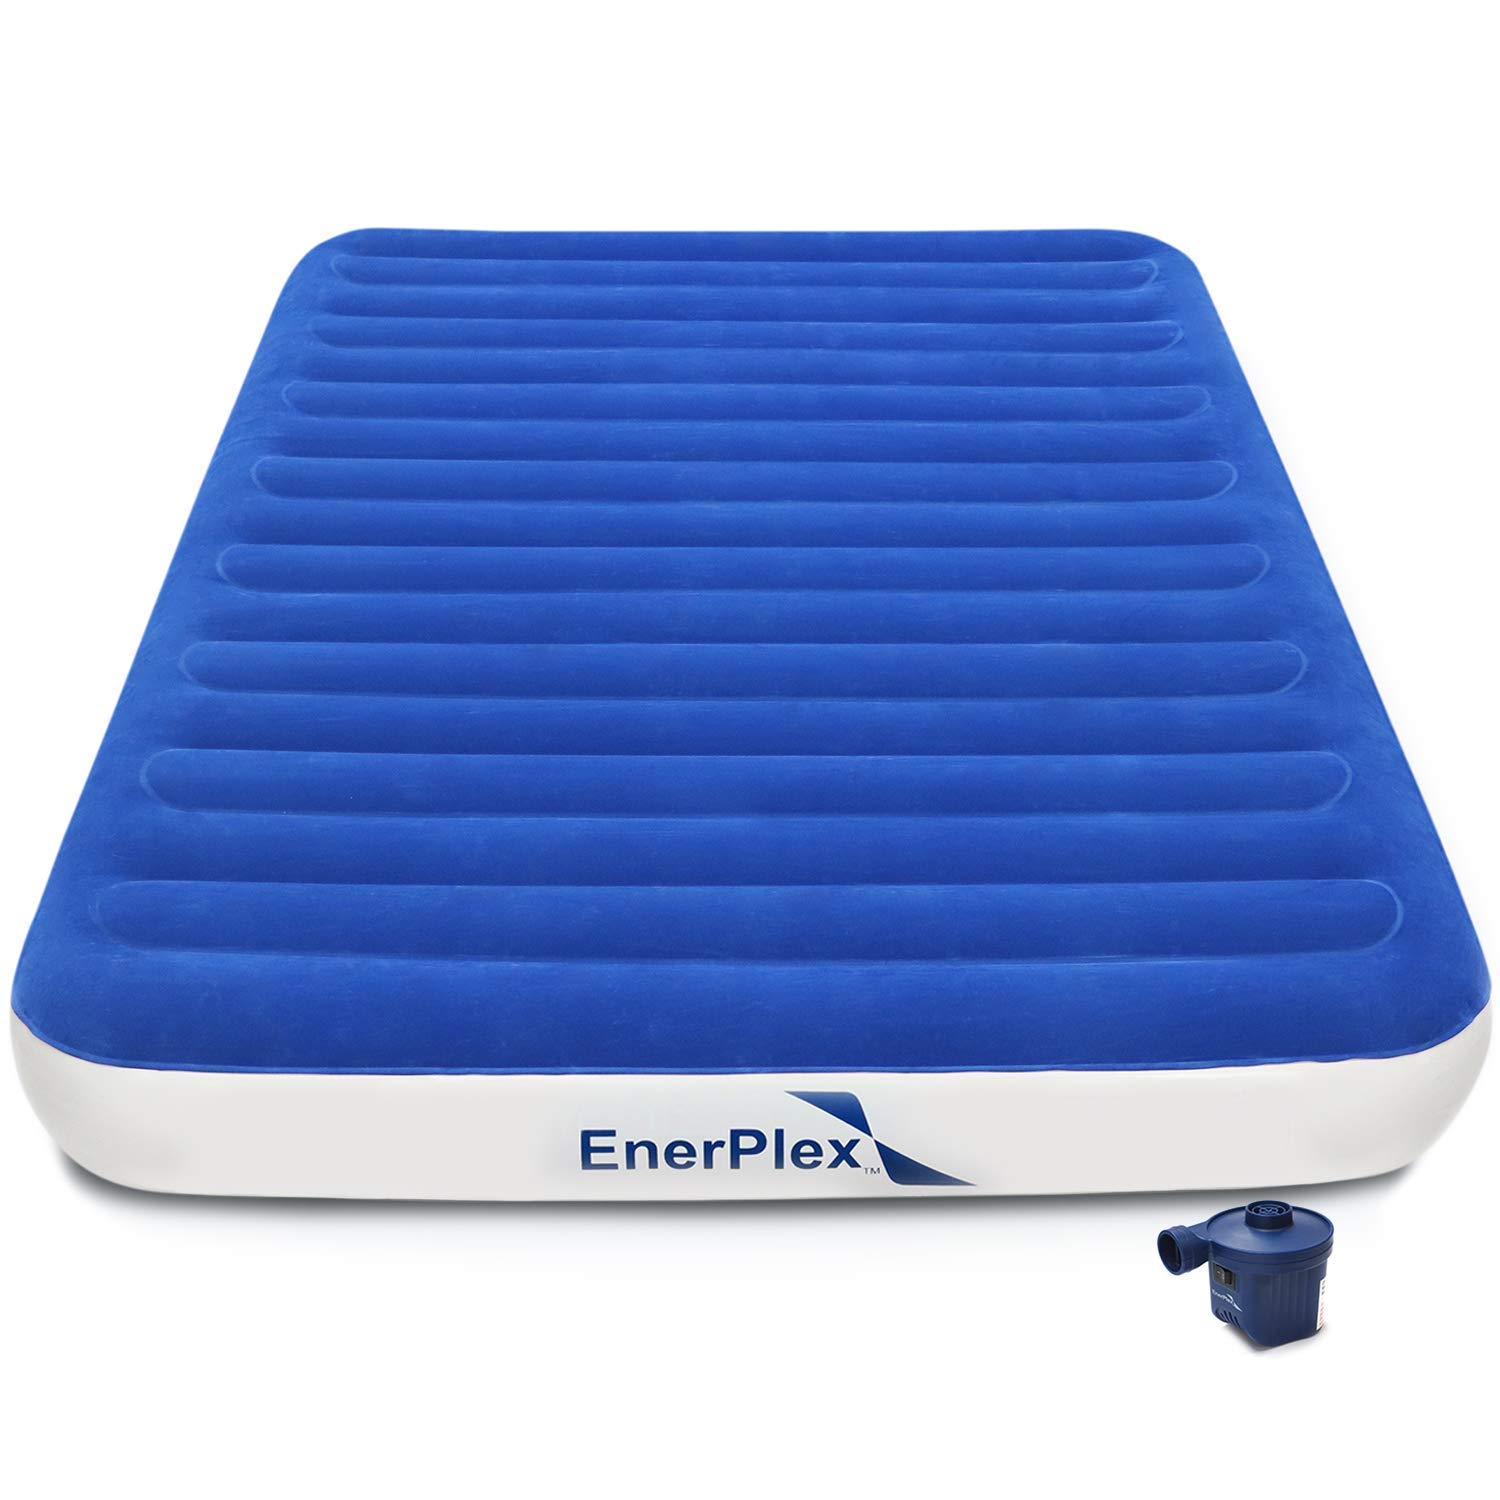 EnerPlex Never-Leak Twin Size Air Mattress Best Airbed for Home and Camping Use Wireless Rechargeable Pump for Blow Up in Home Car Tent Camping Guest Bed 2-Year Warranty